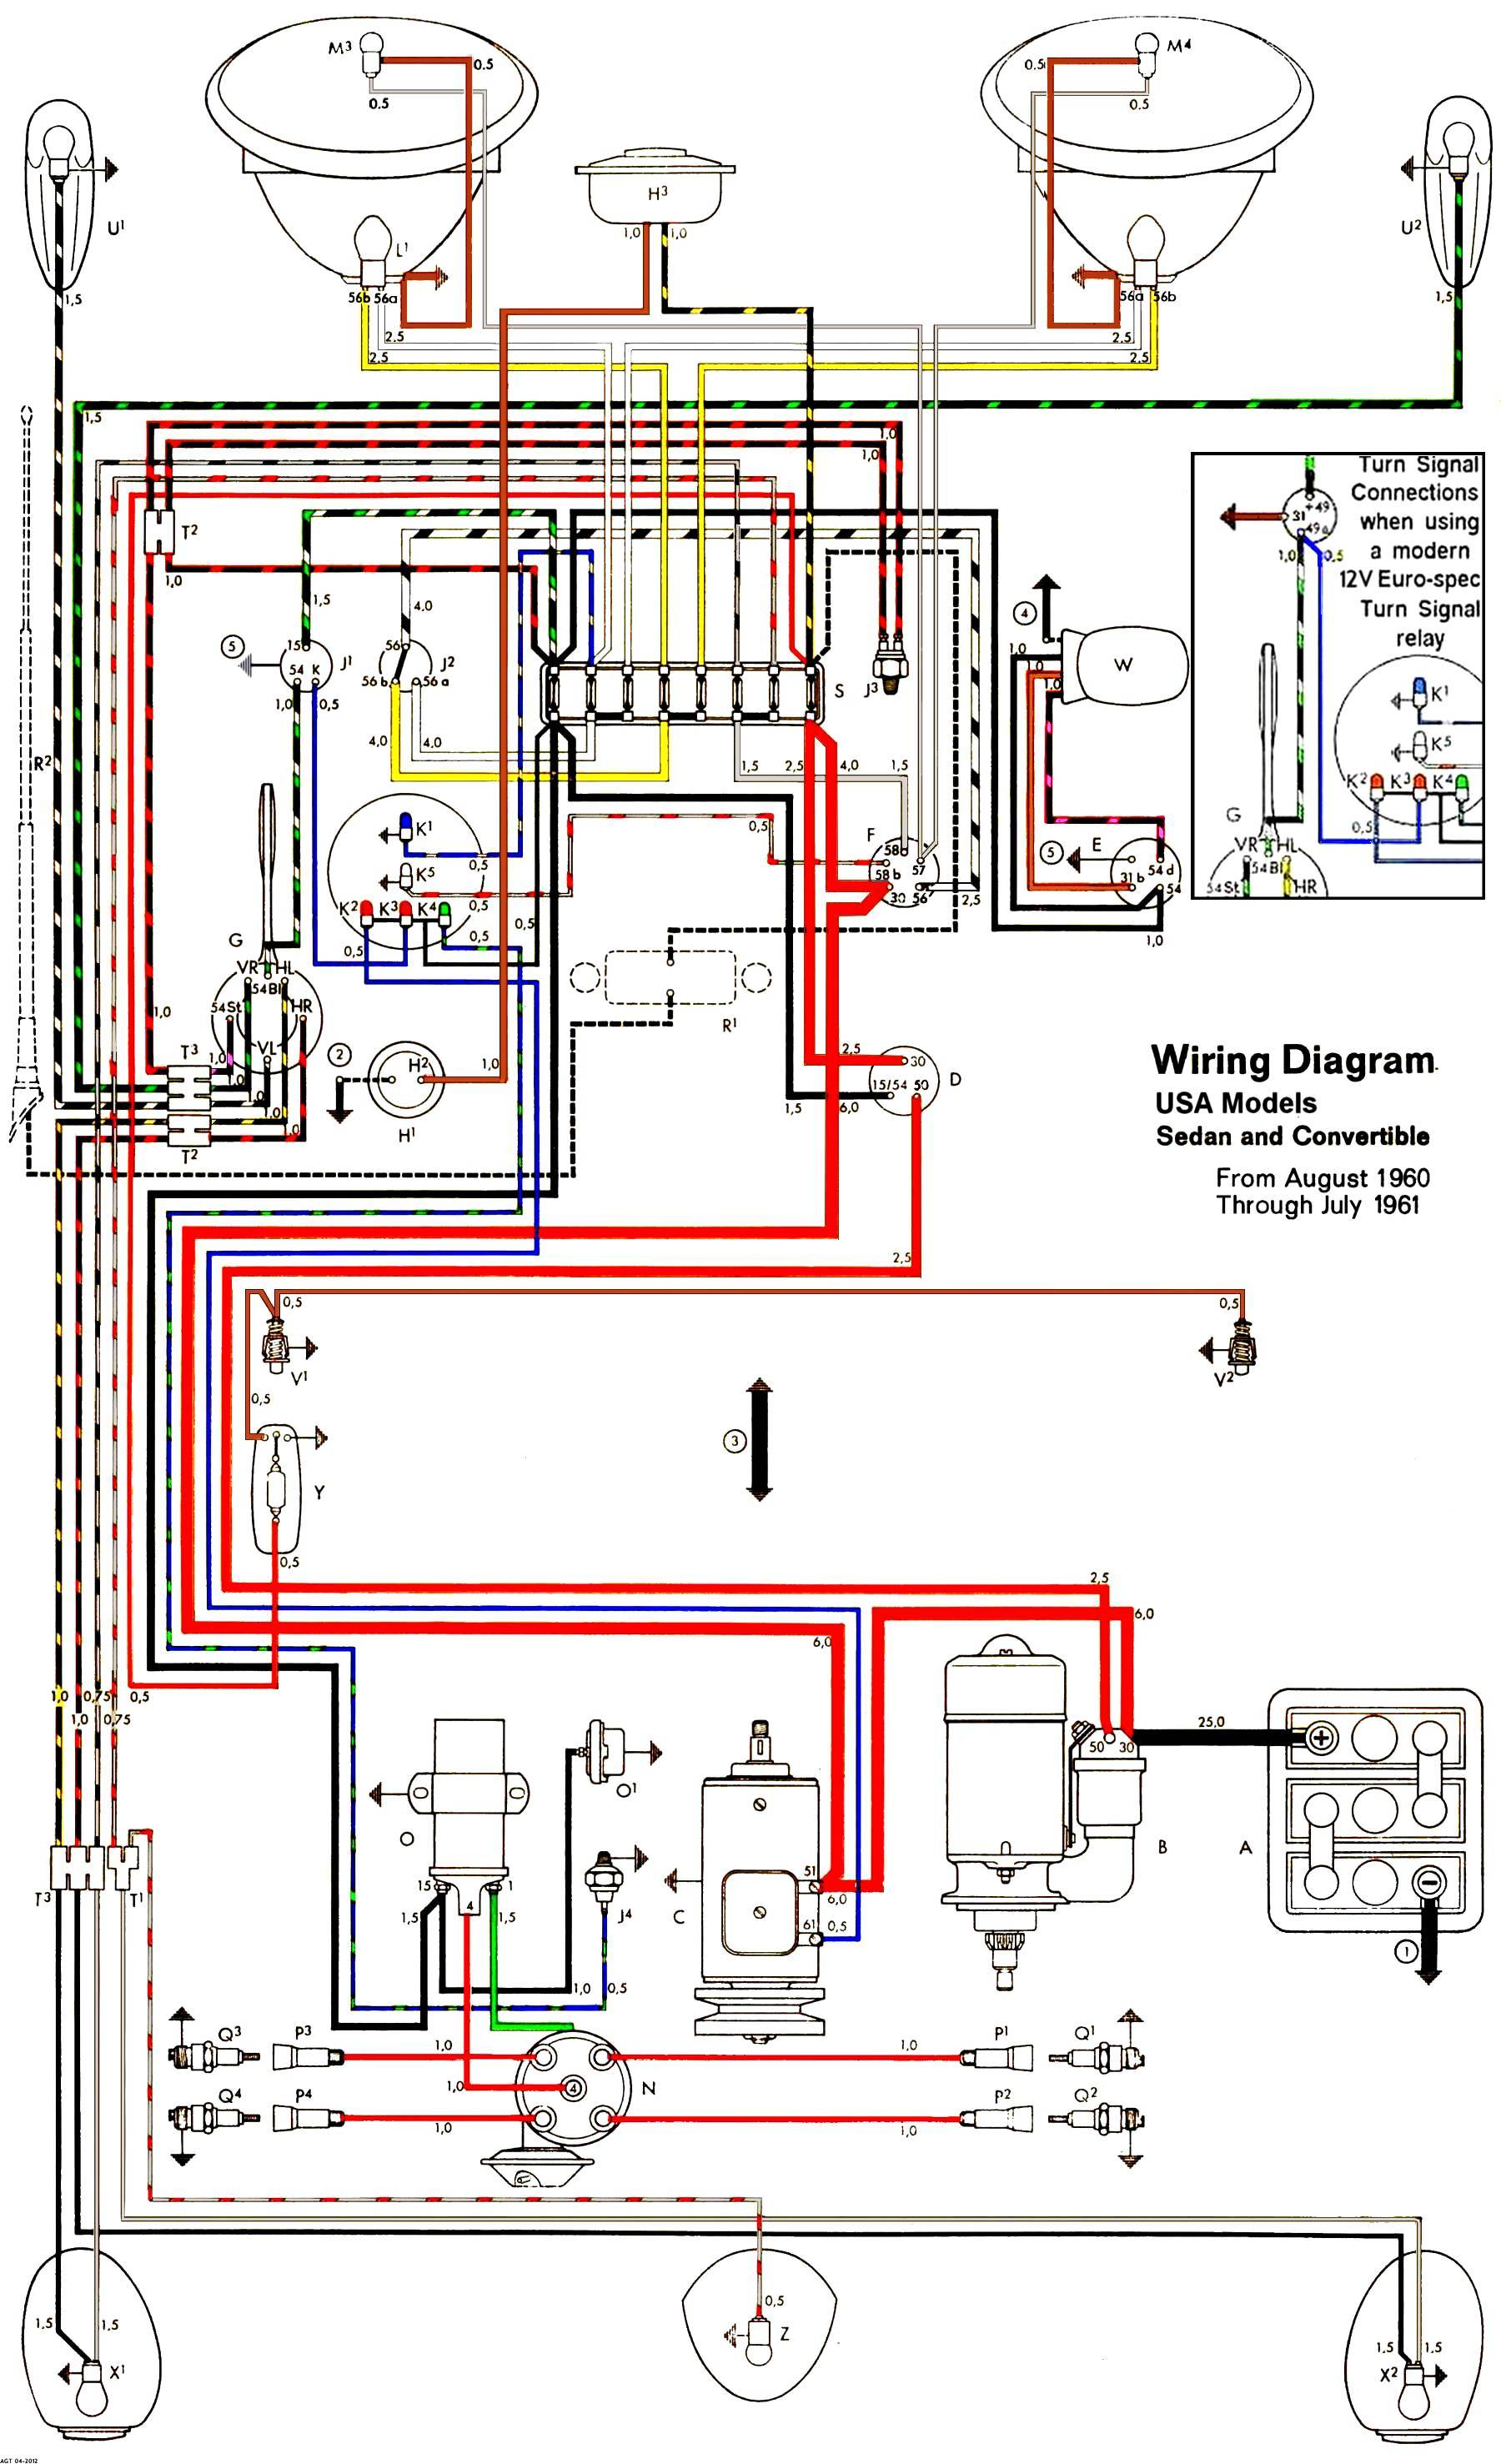 thesamba com type 1 wiring diagrams rh thesamba com VW 1970 Wiring-Diagram Volkswagen Super Beetle Wiring Diagram